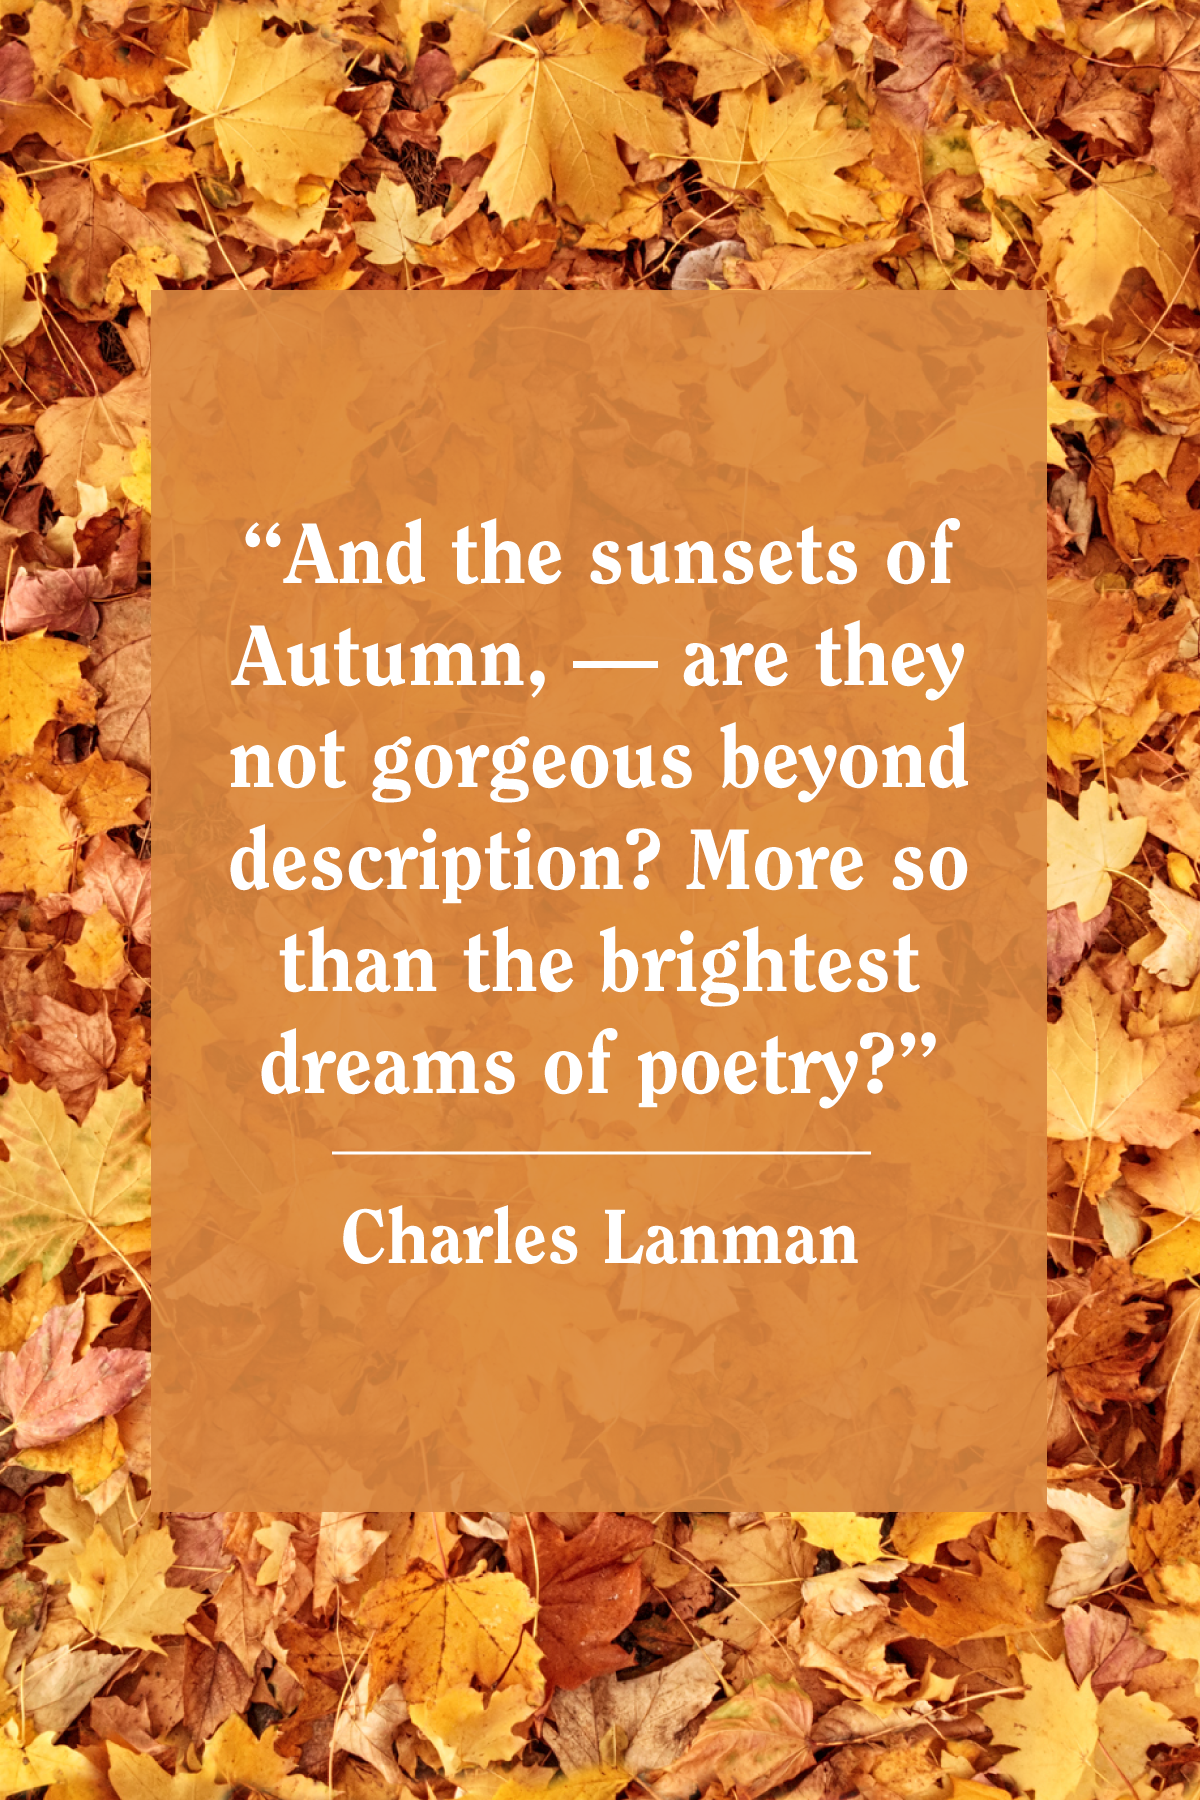 55 Best Fall Quotes 2020 Inspirational Autumn Quotes For Instagram